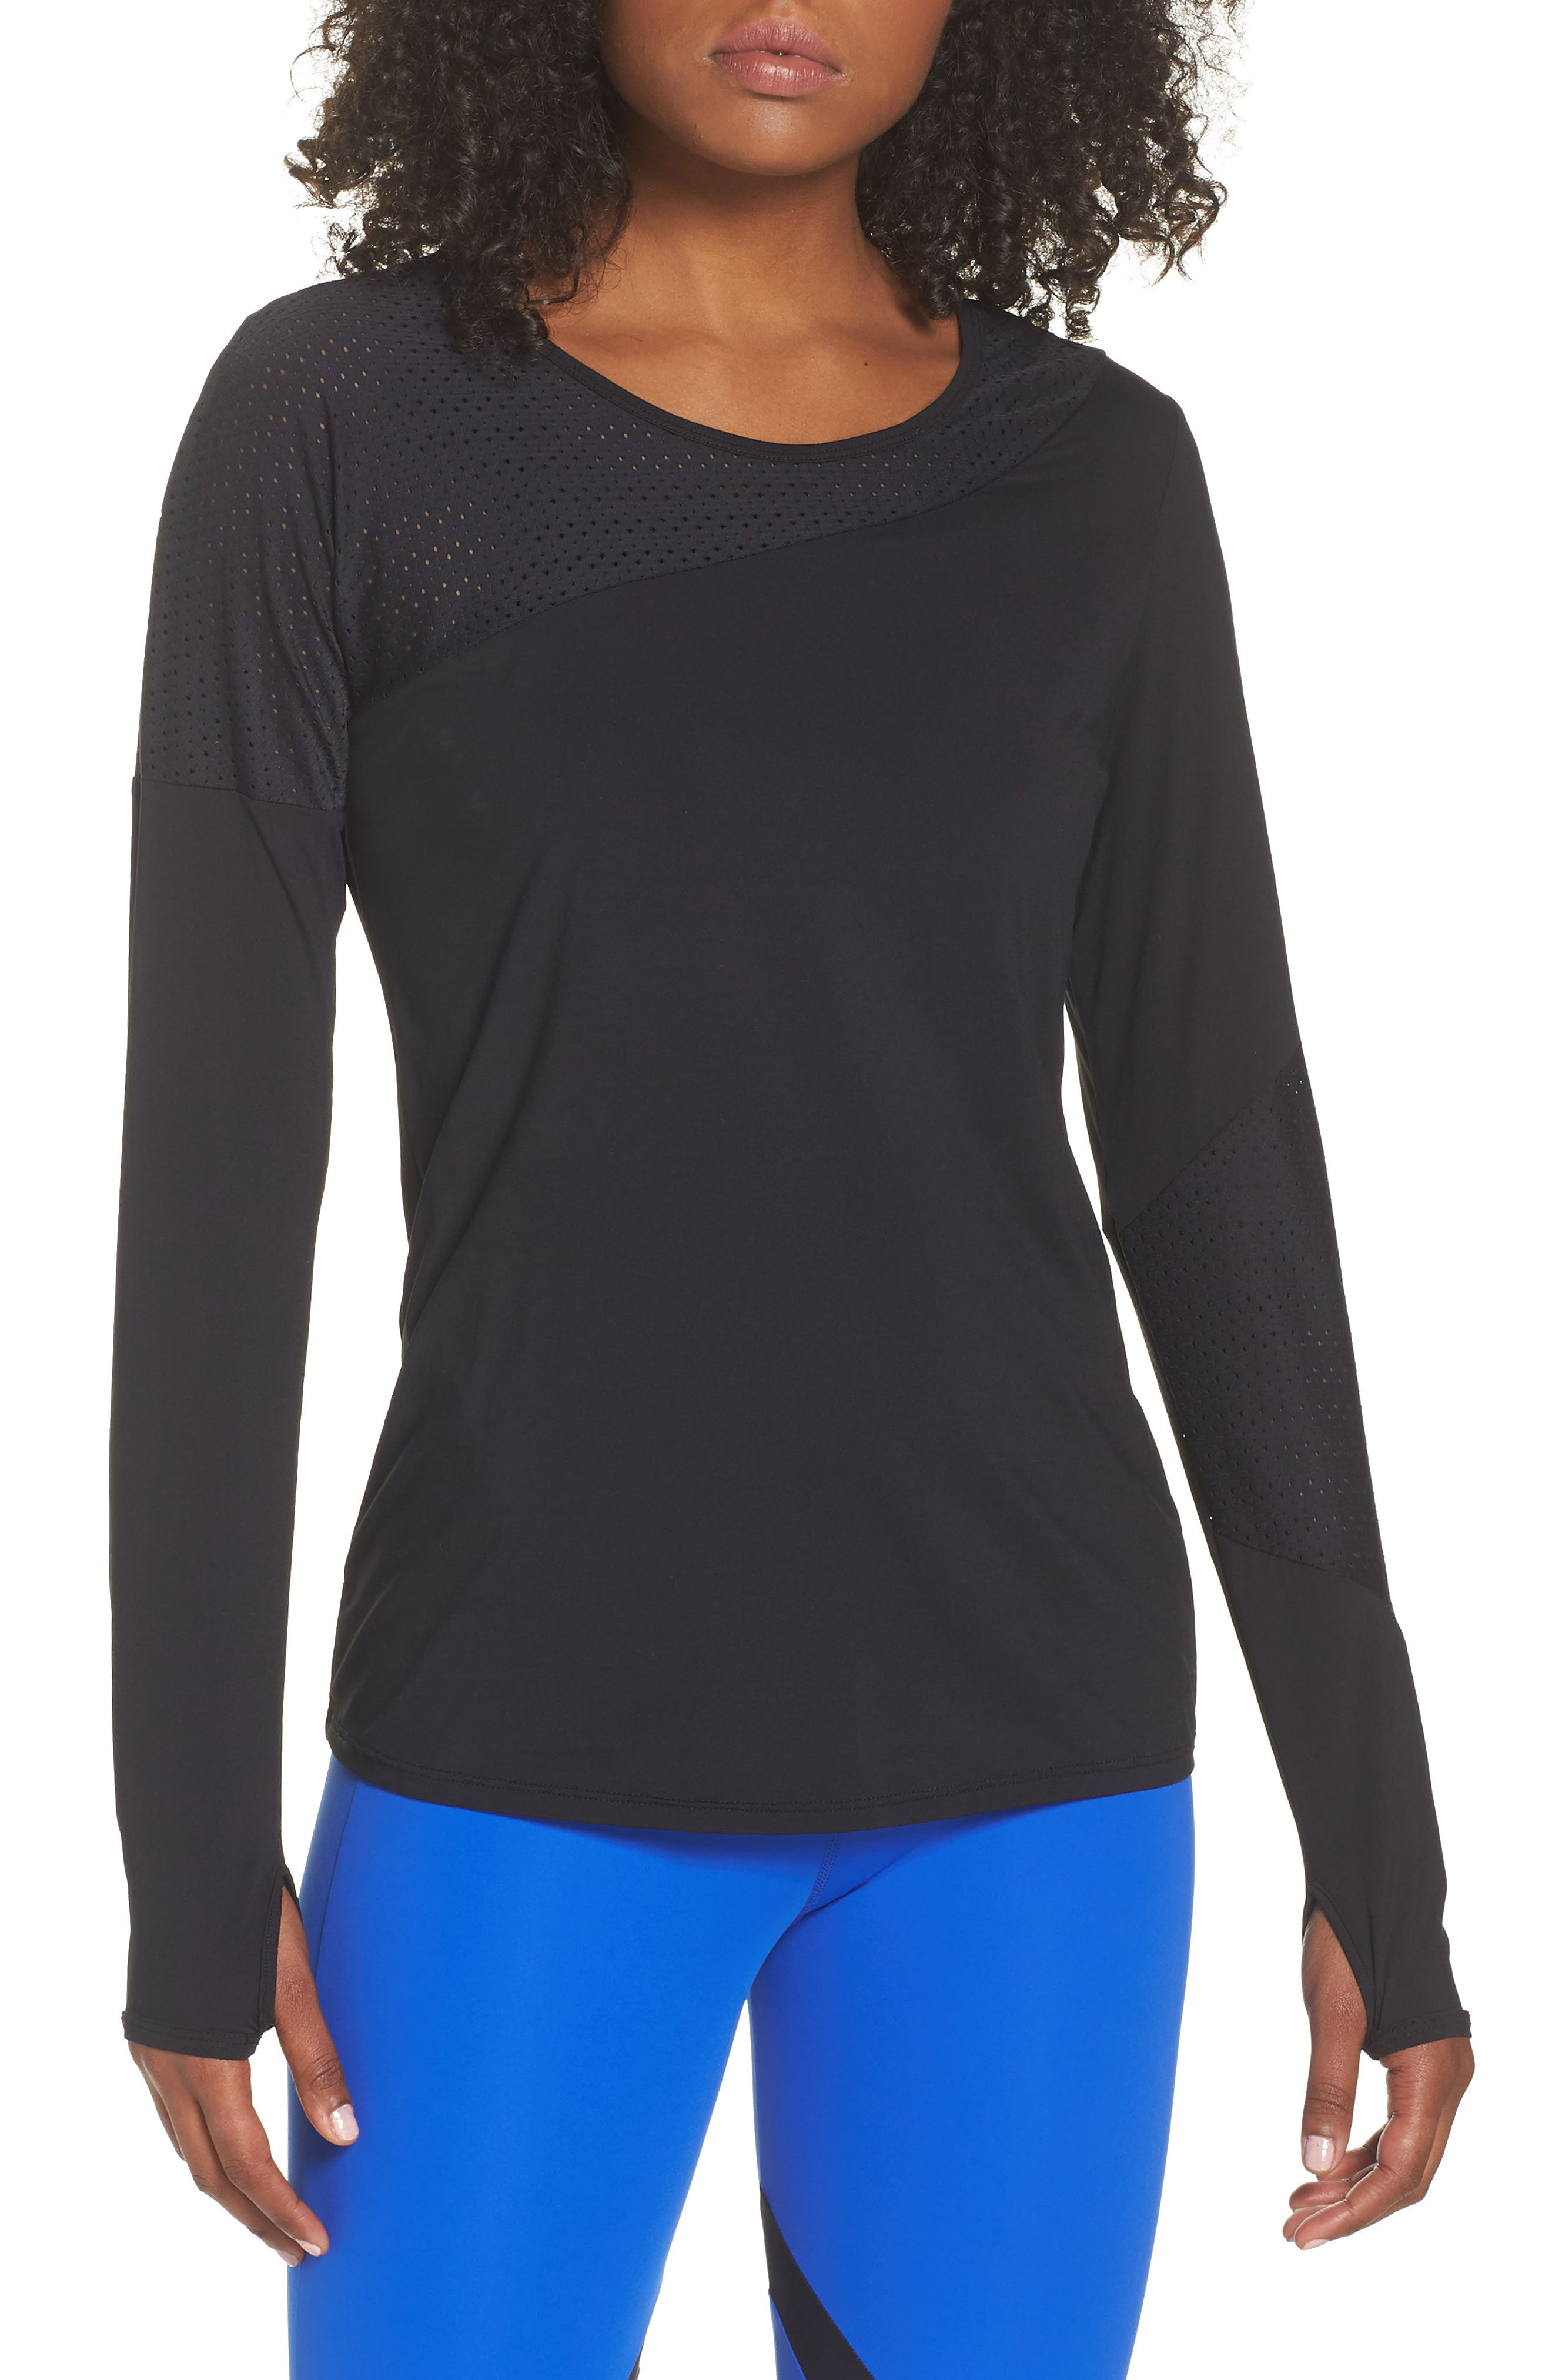 BoomBoom Athletica Easy Tunic,                             Main thumbnail 1, color,                             BLACK